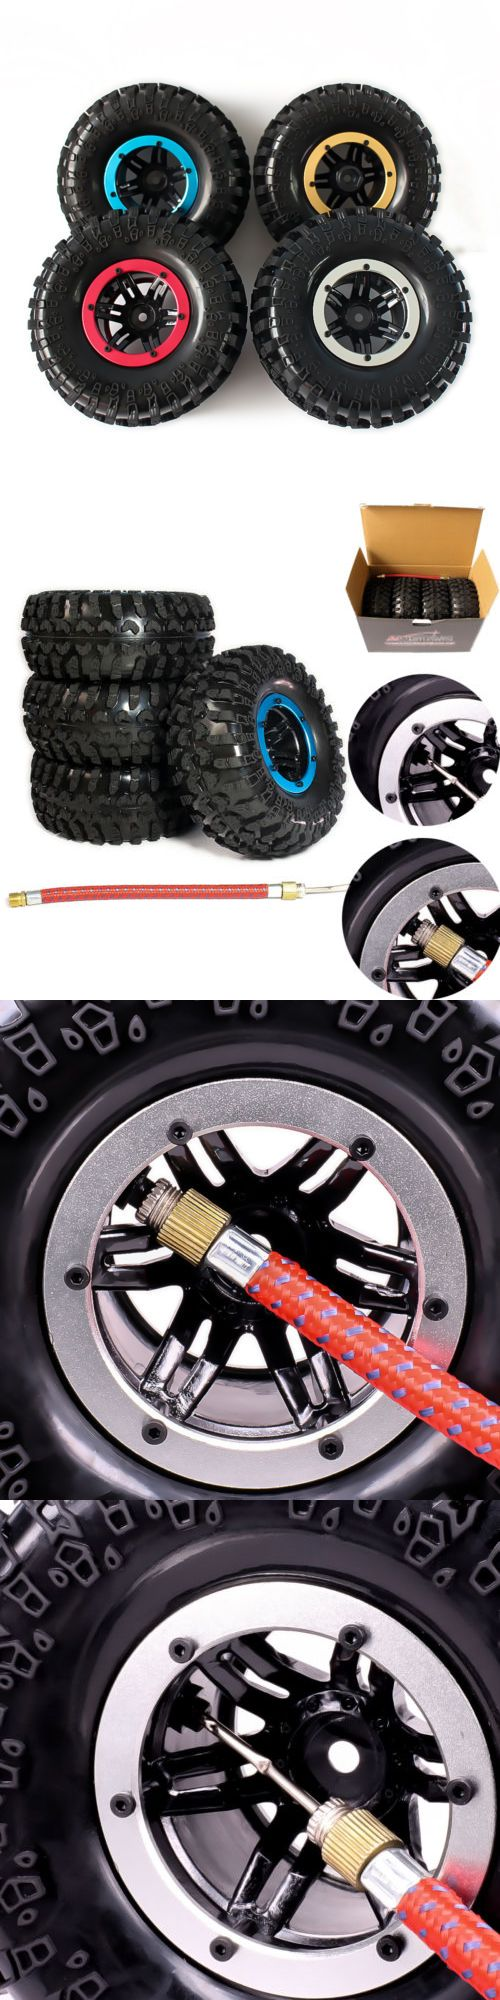 Radio Control 51029: 4Pcs 2.2 Inflatable Tires W Alloy Beadlock Wheels For 1 10 Rc Crawler Car New -> BUY IT NOW ONLY: $37.88 on eBay!